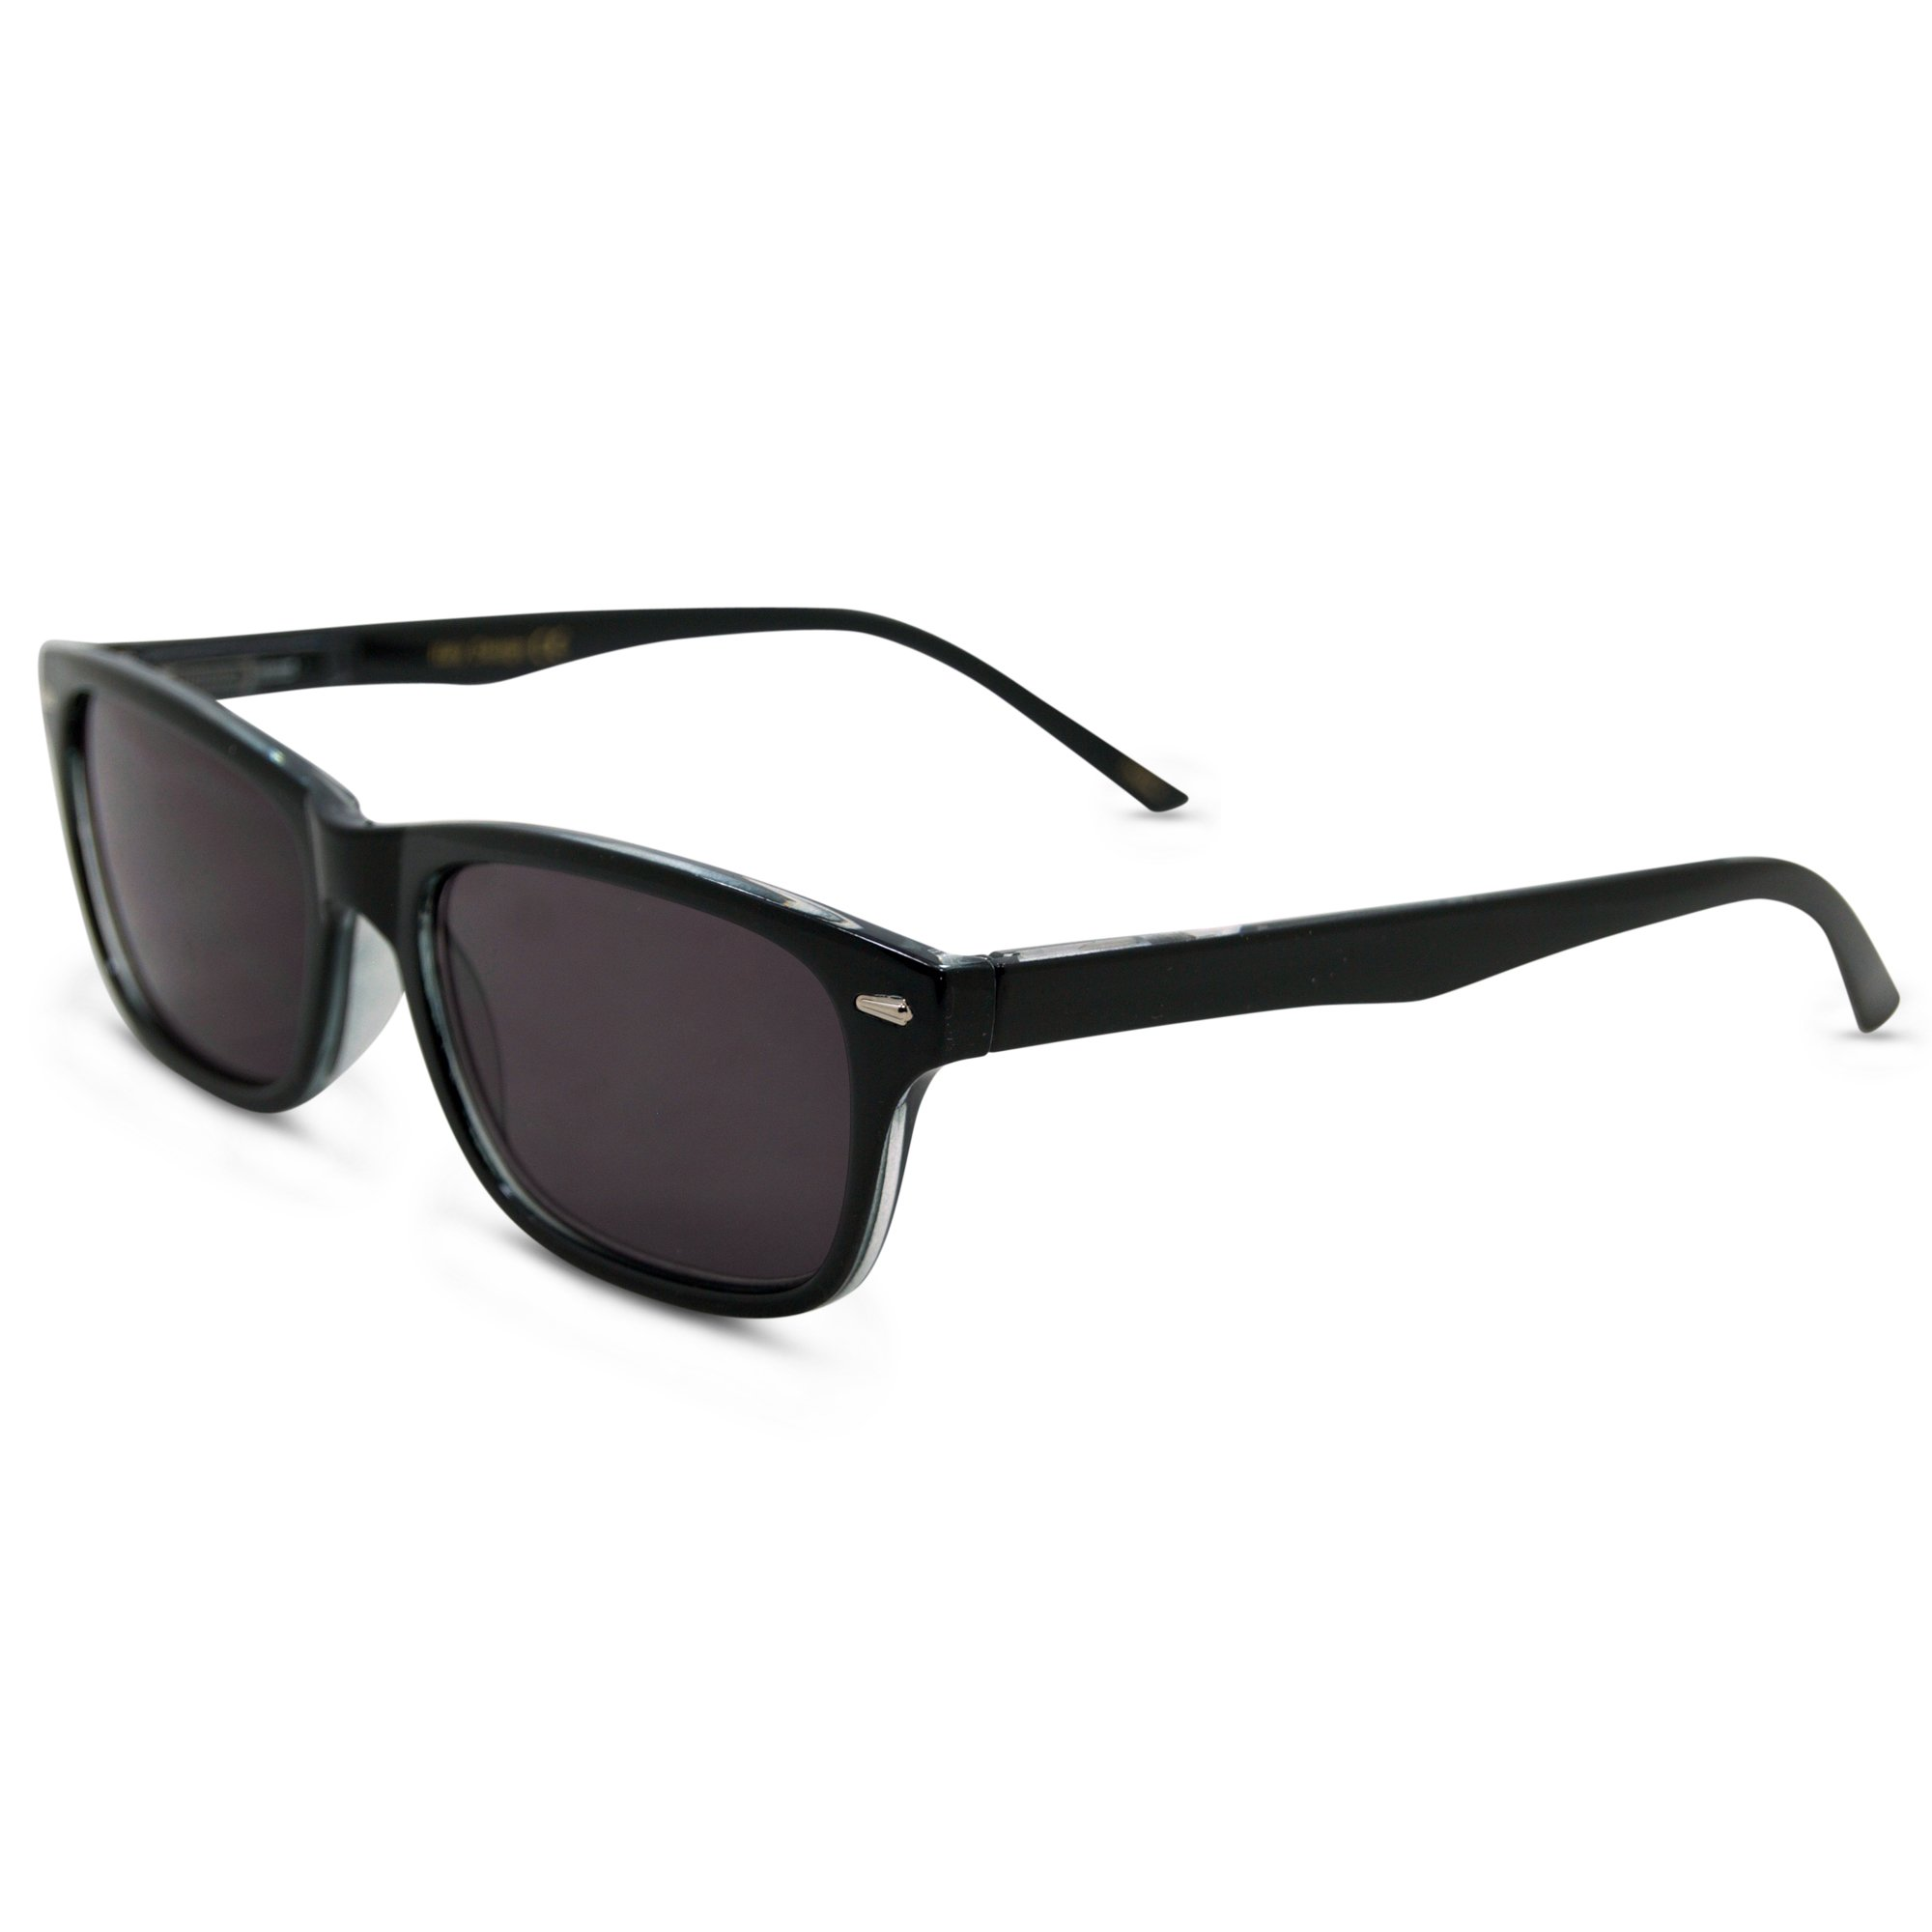 In Style Eyes Seymore Wayfarer Reading Sunglasses, NOT Bifocals Black 1.75